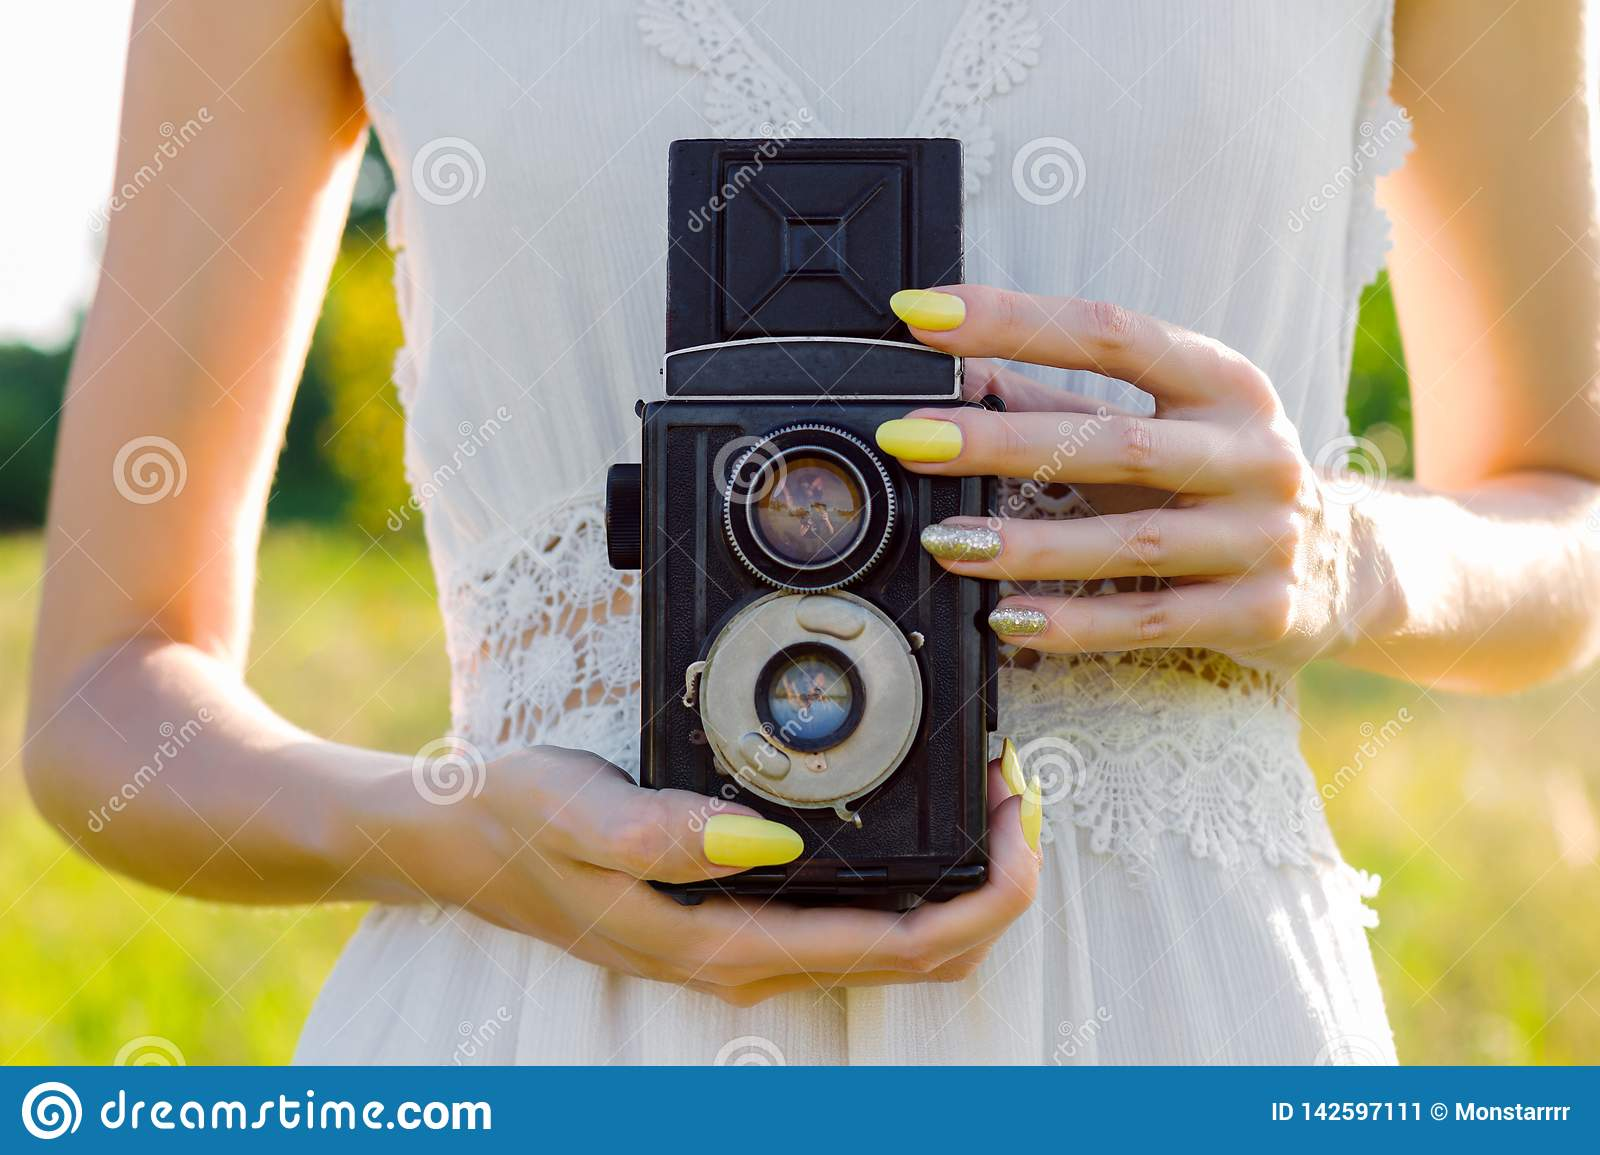 Beauty woman taking photo on retro camera outdoor in park in warm spring day